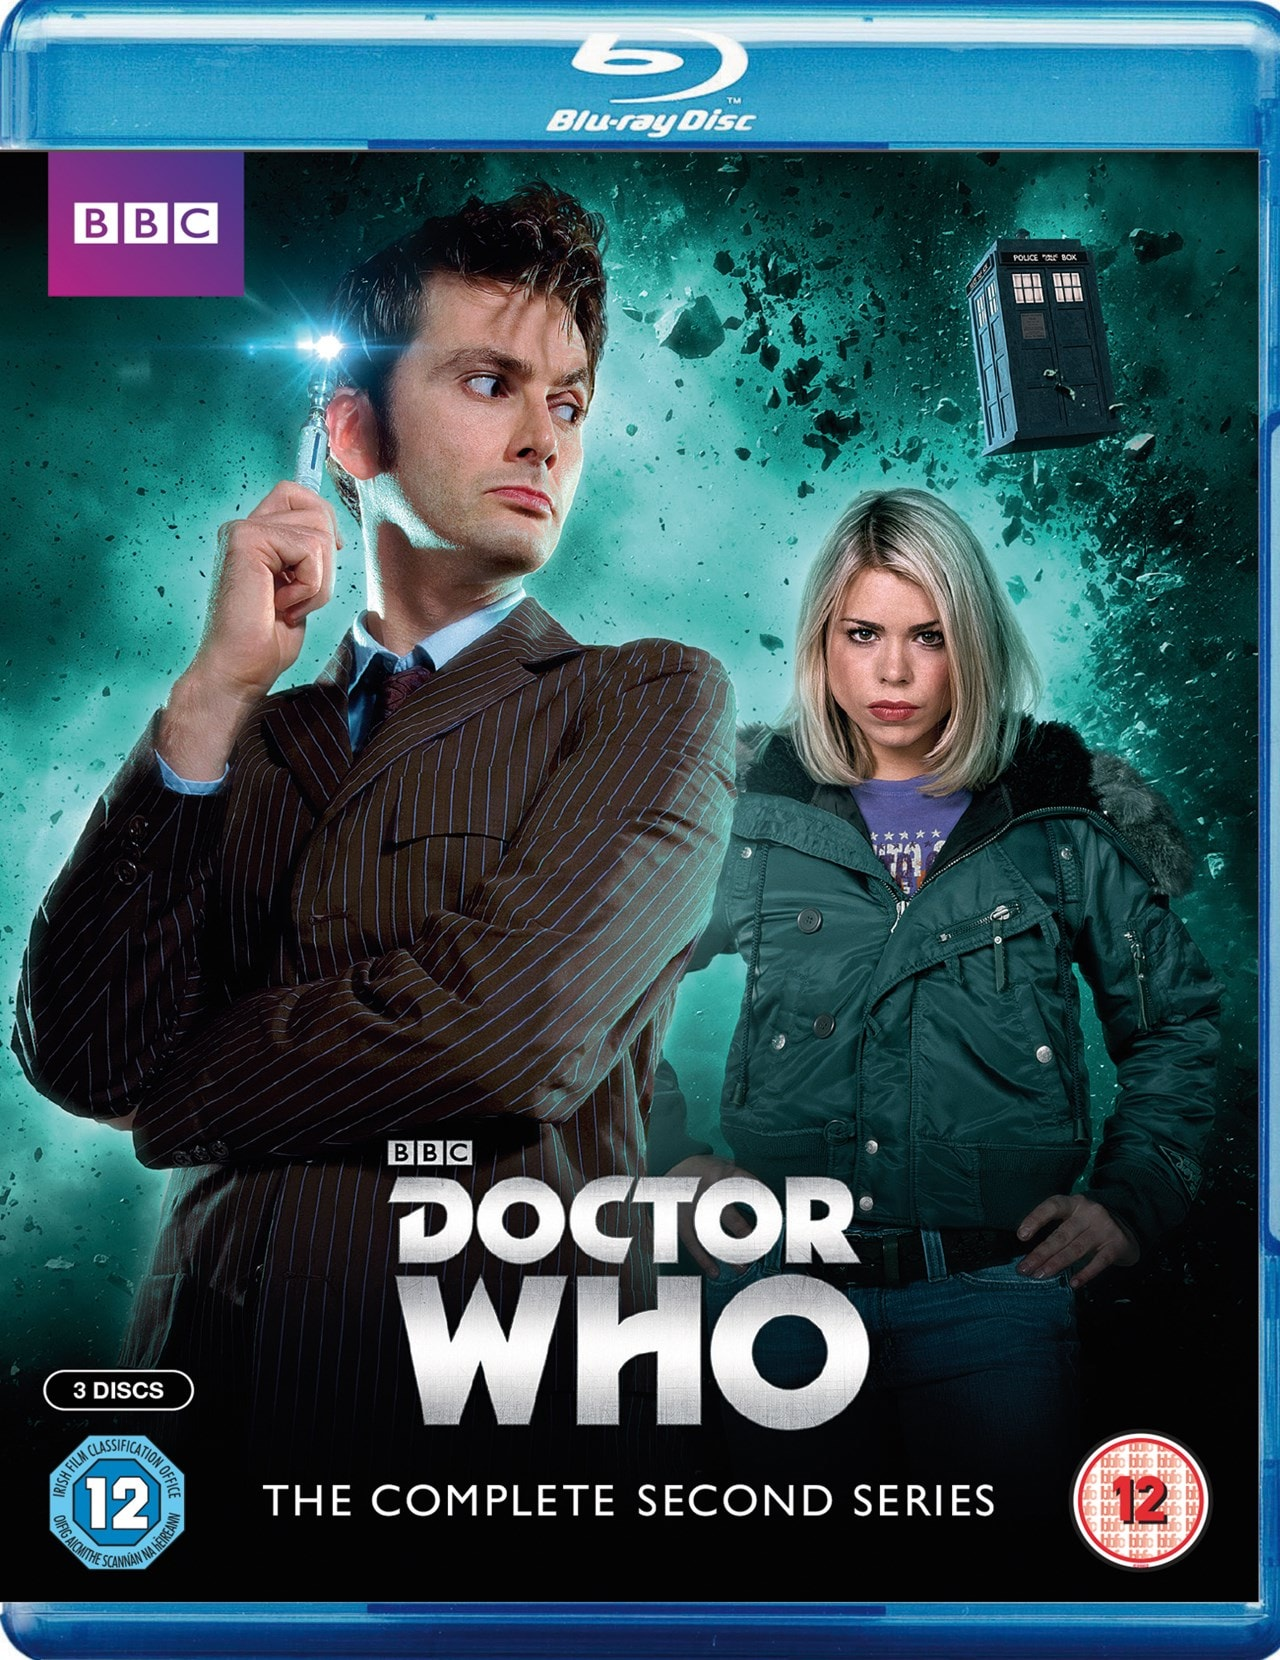 Doctor Who: The Complete Second Series - 1